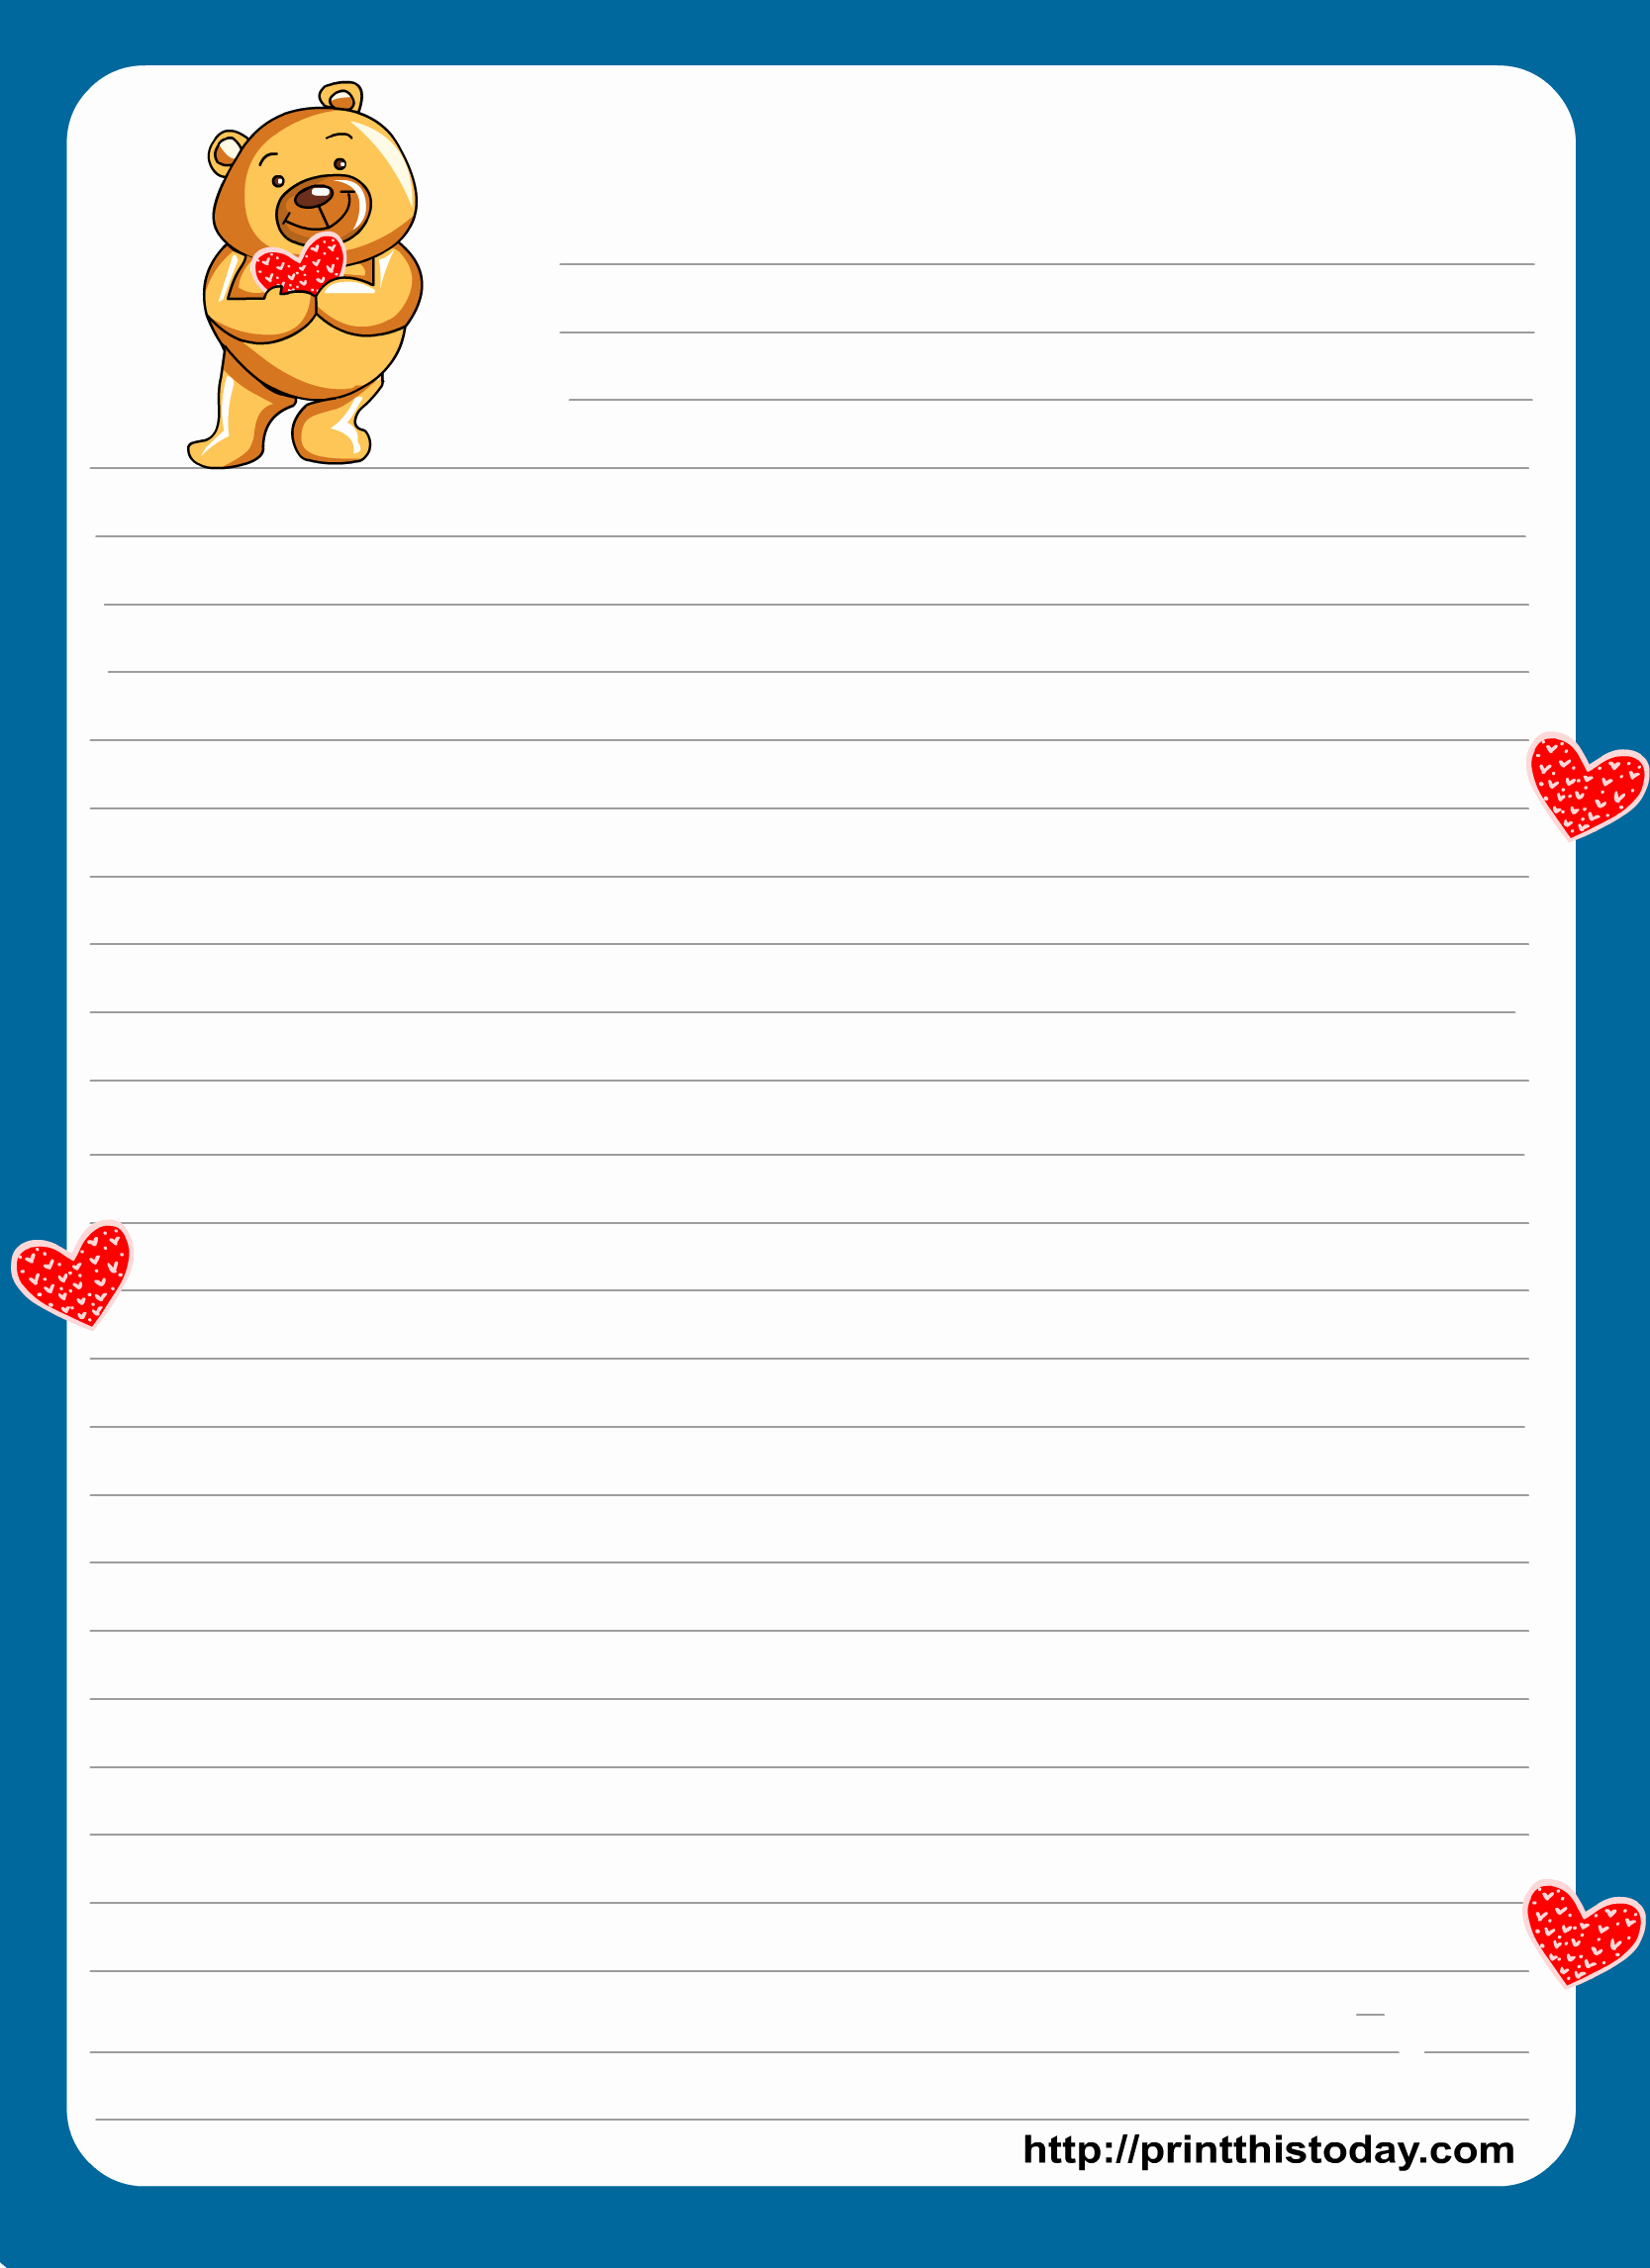 Free Printable Writing Paper Beautiful Teddy Bear Writing Paper for Kids